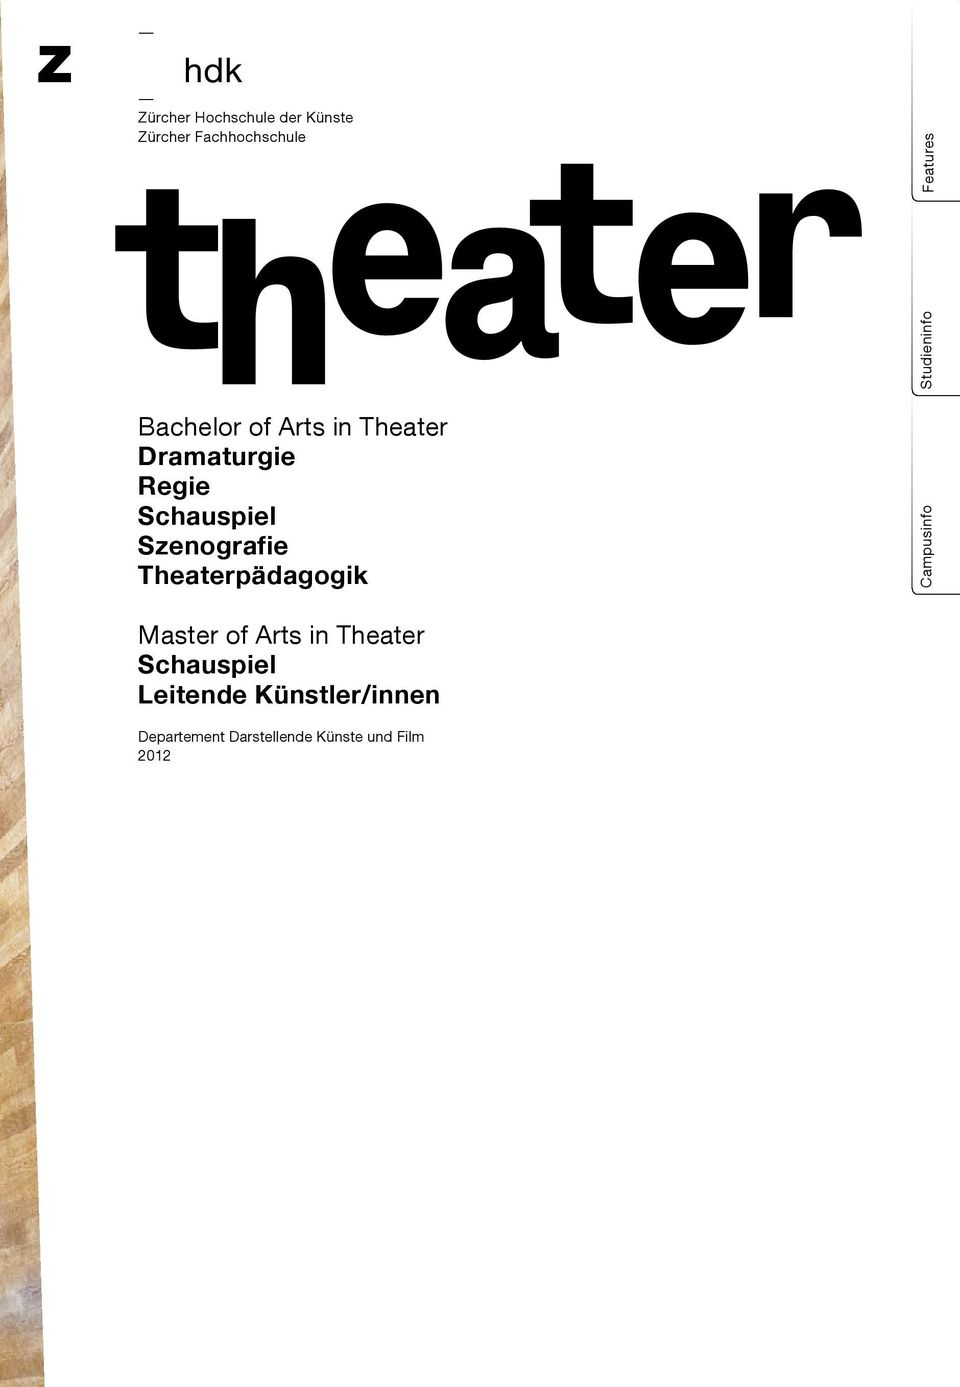 Theaterpädagogik Campusinfo Studieninfo Features Master of Arts in